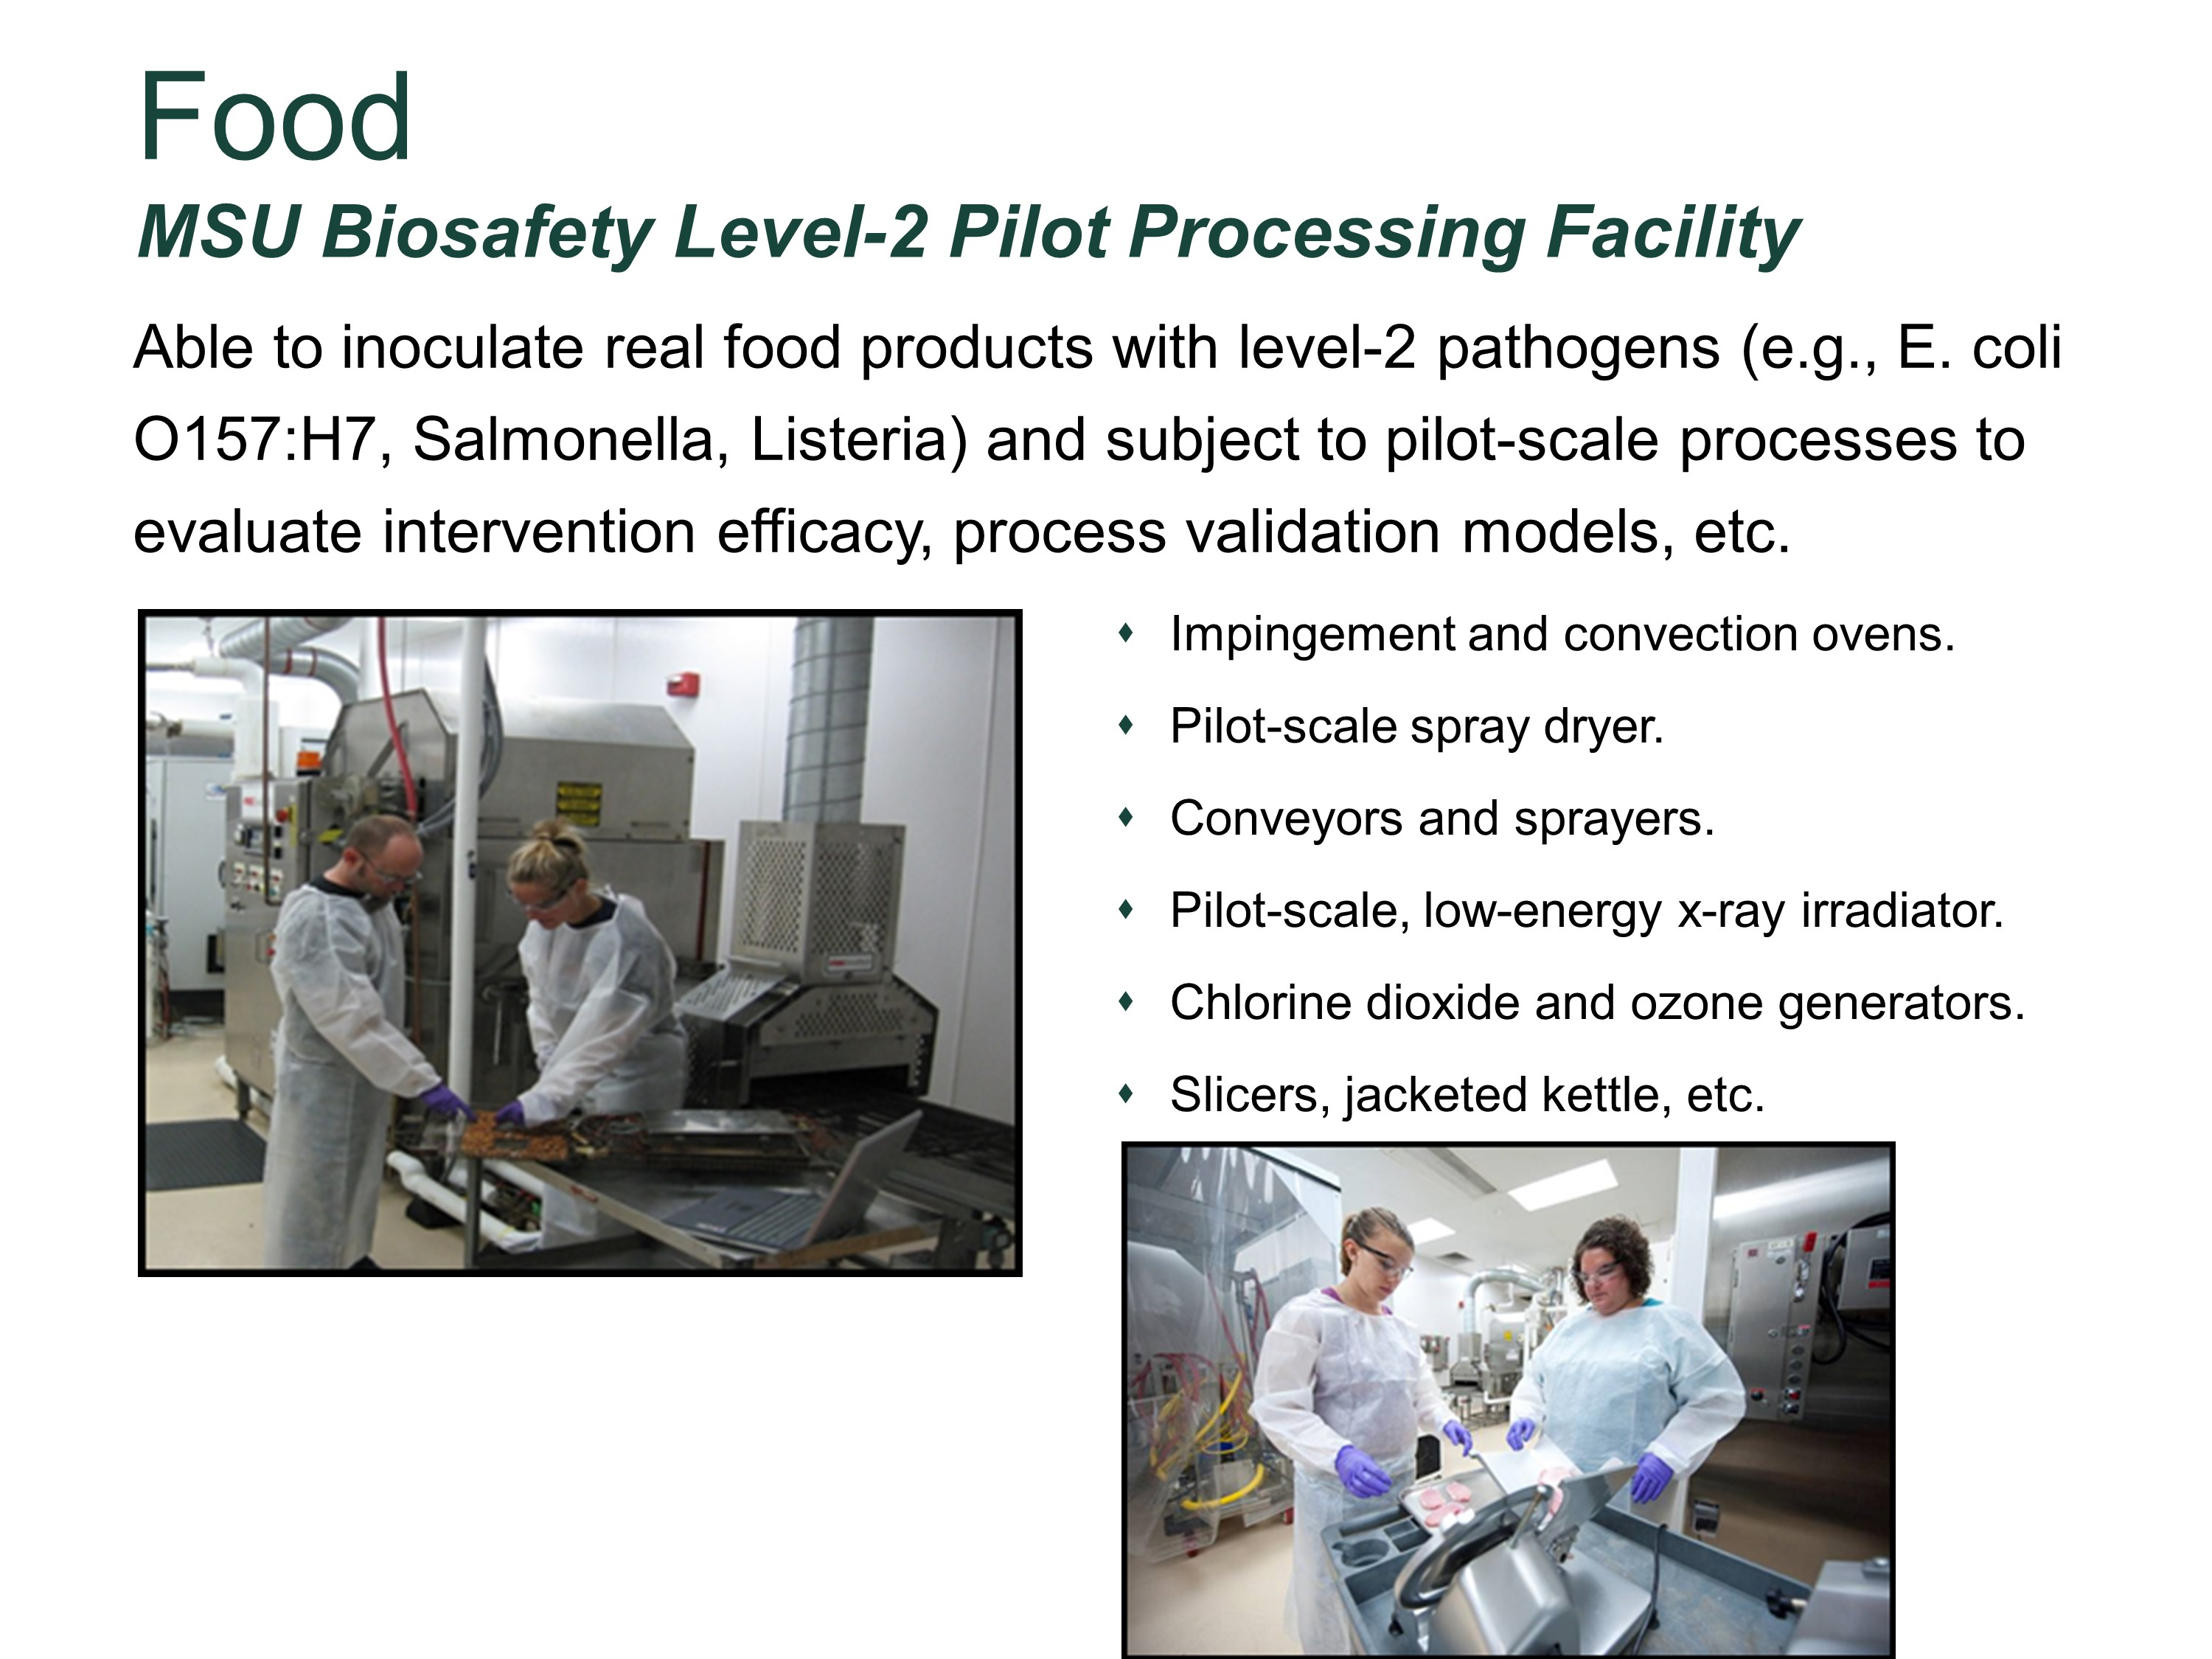 MSU Biosafety Level-2 Pilot Processing Facility